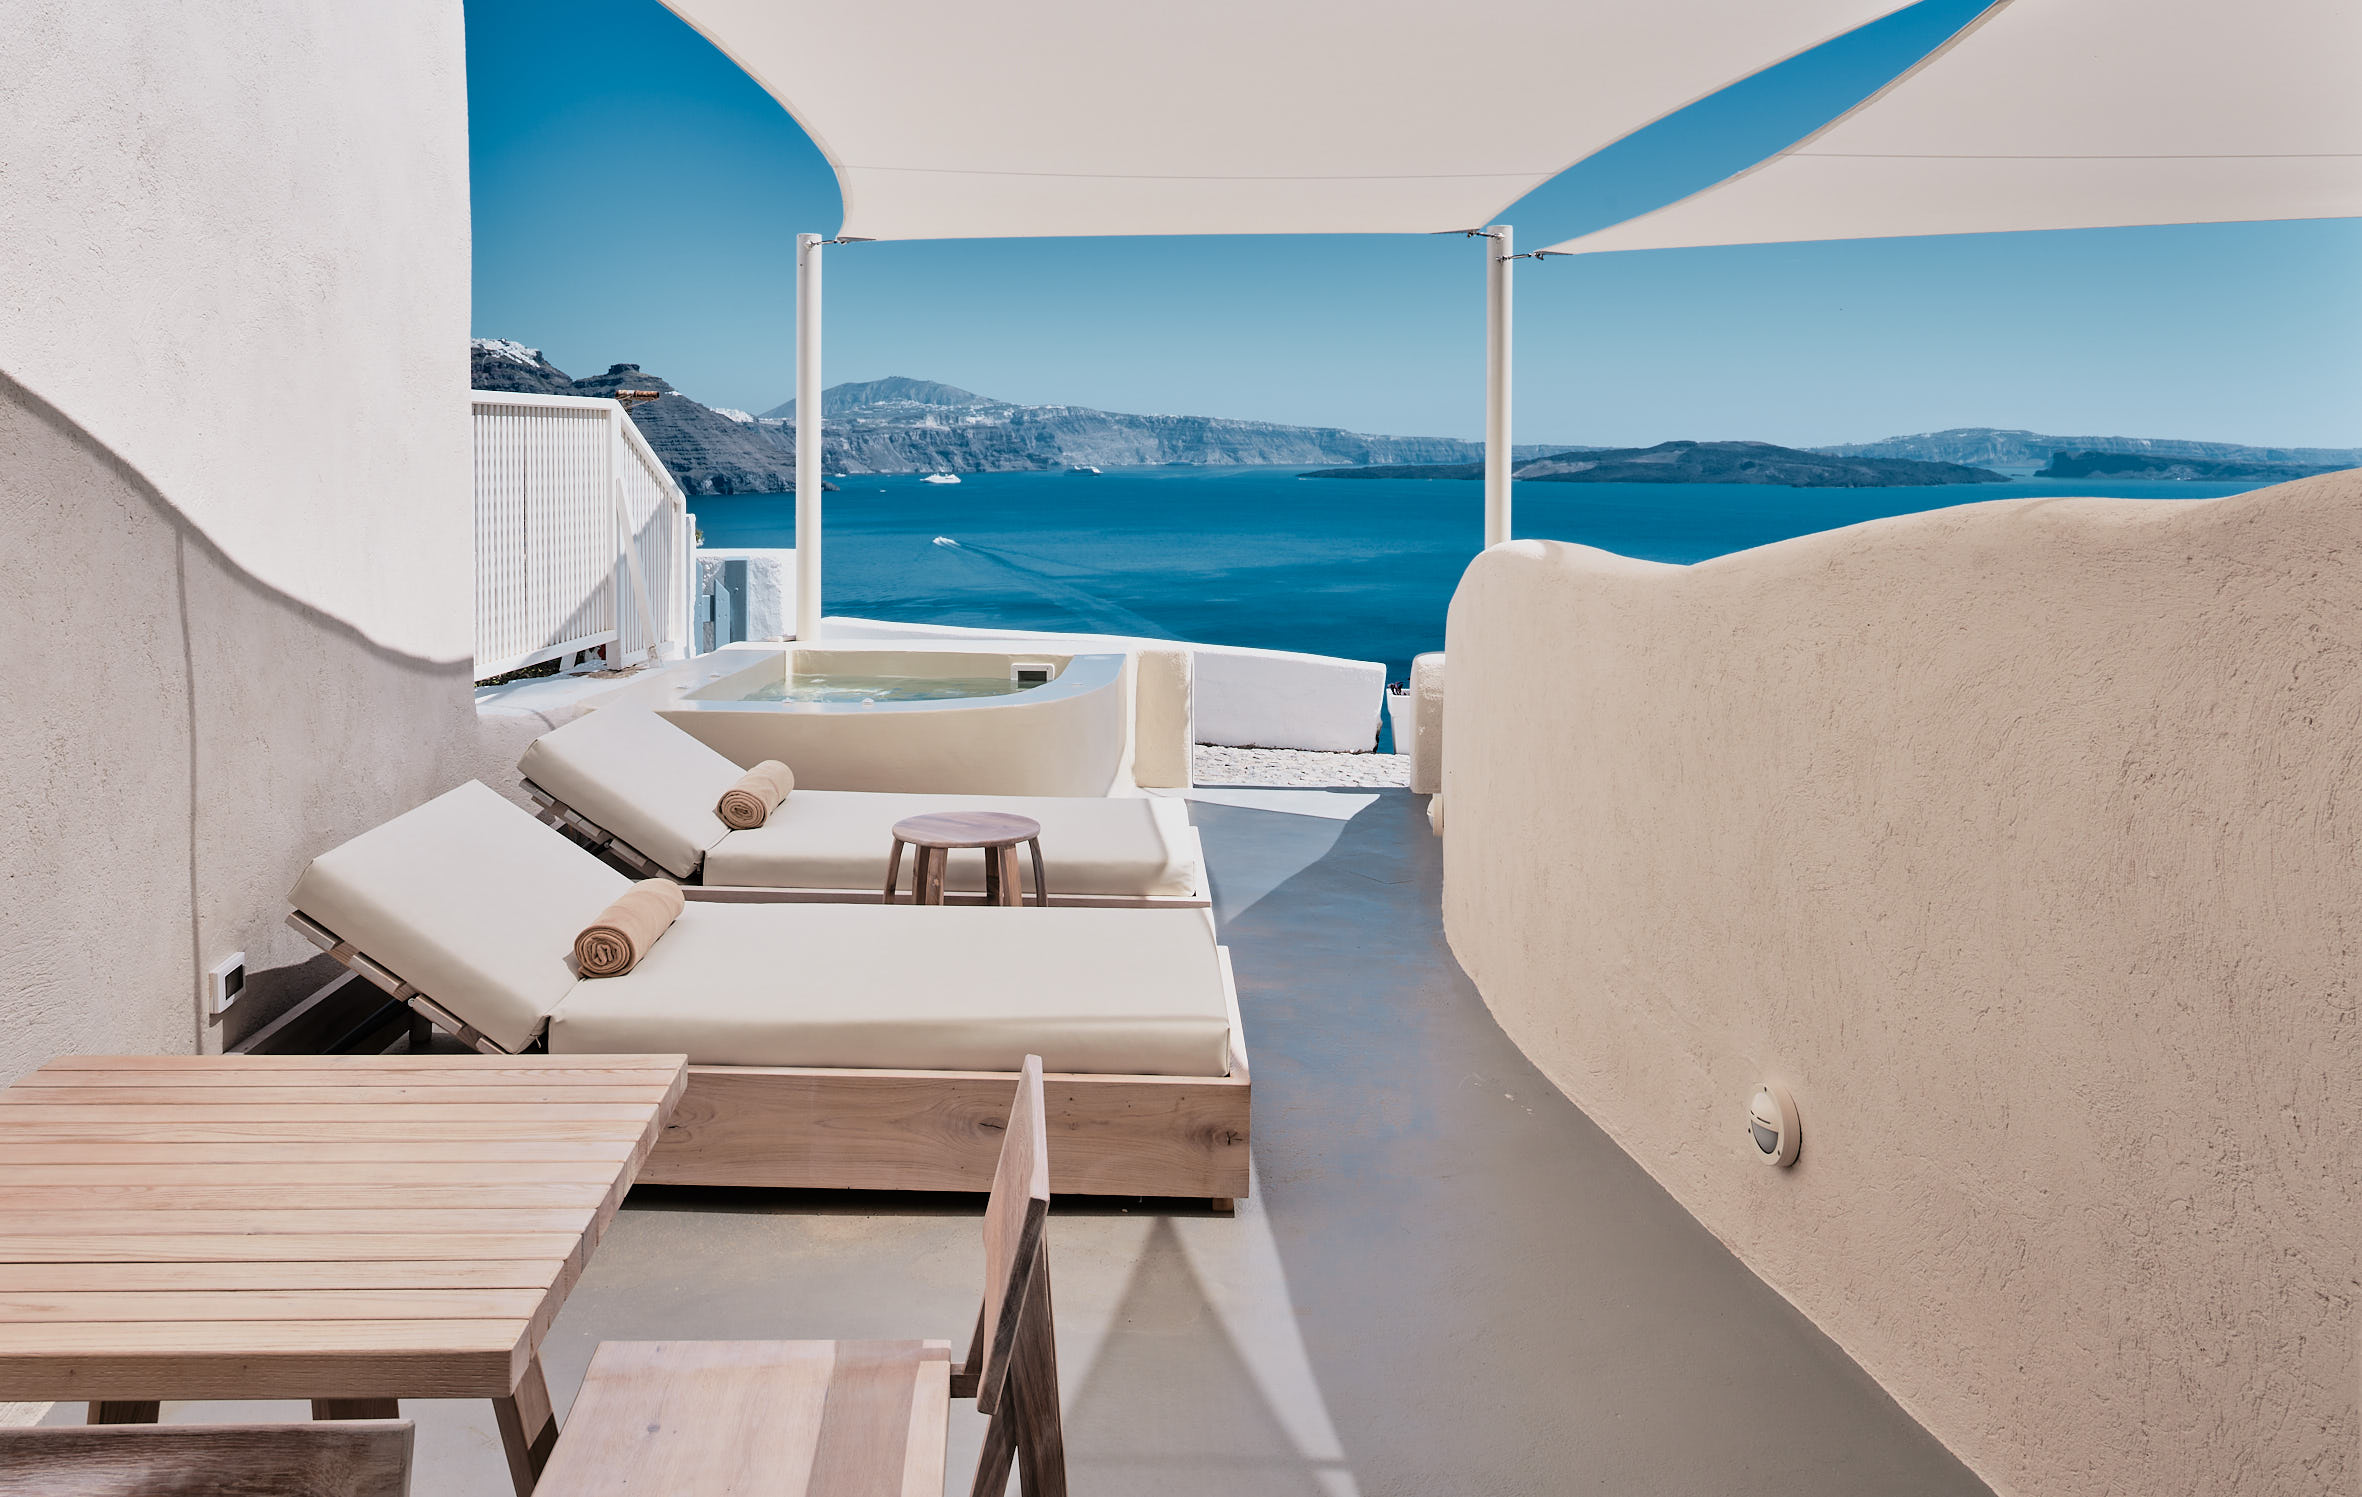 Private terrace with pool overlooking the Aegean Sea